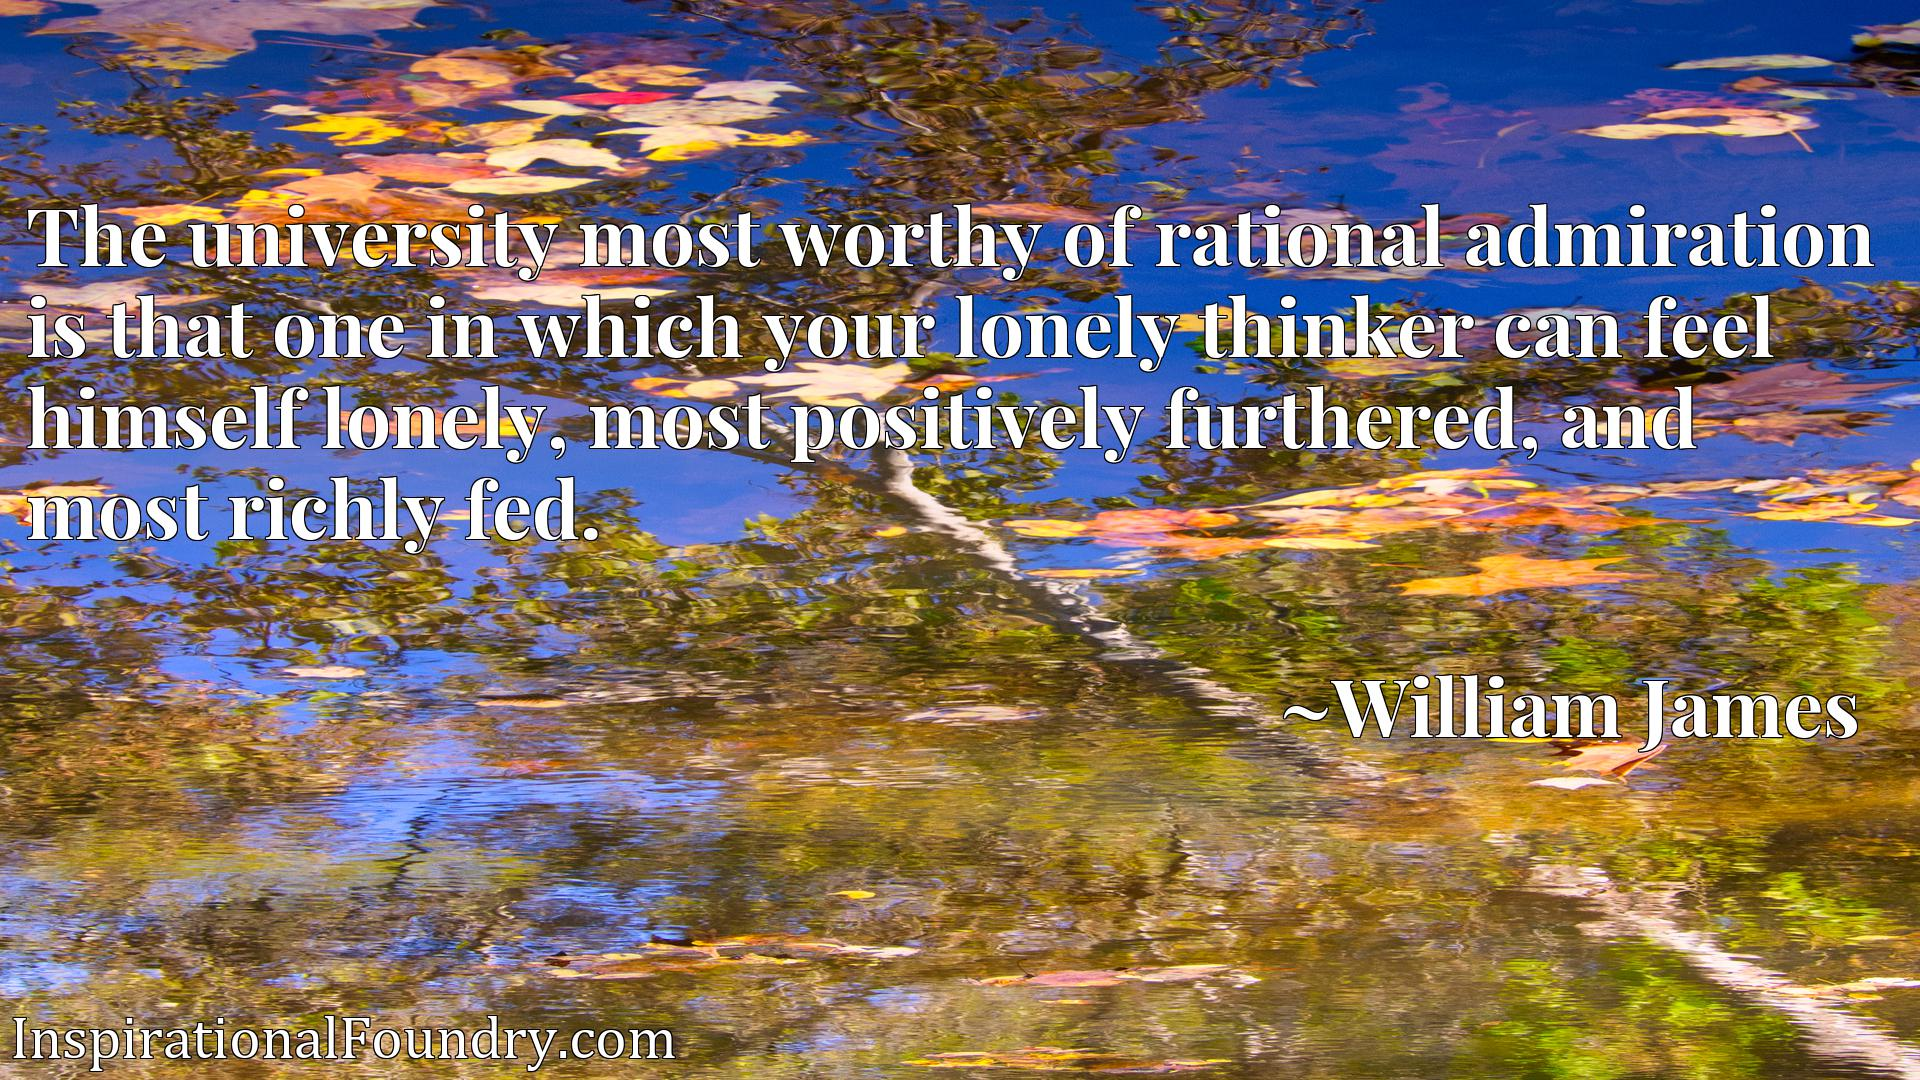 The university most worthy of rational admiration is that one in which your lonely thinker can feel himself lonely, most positively furthered, and most richly fed.